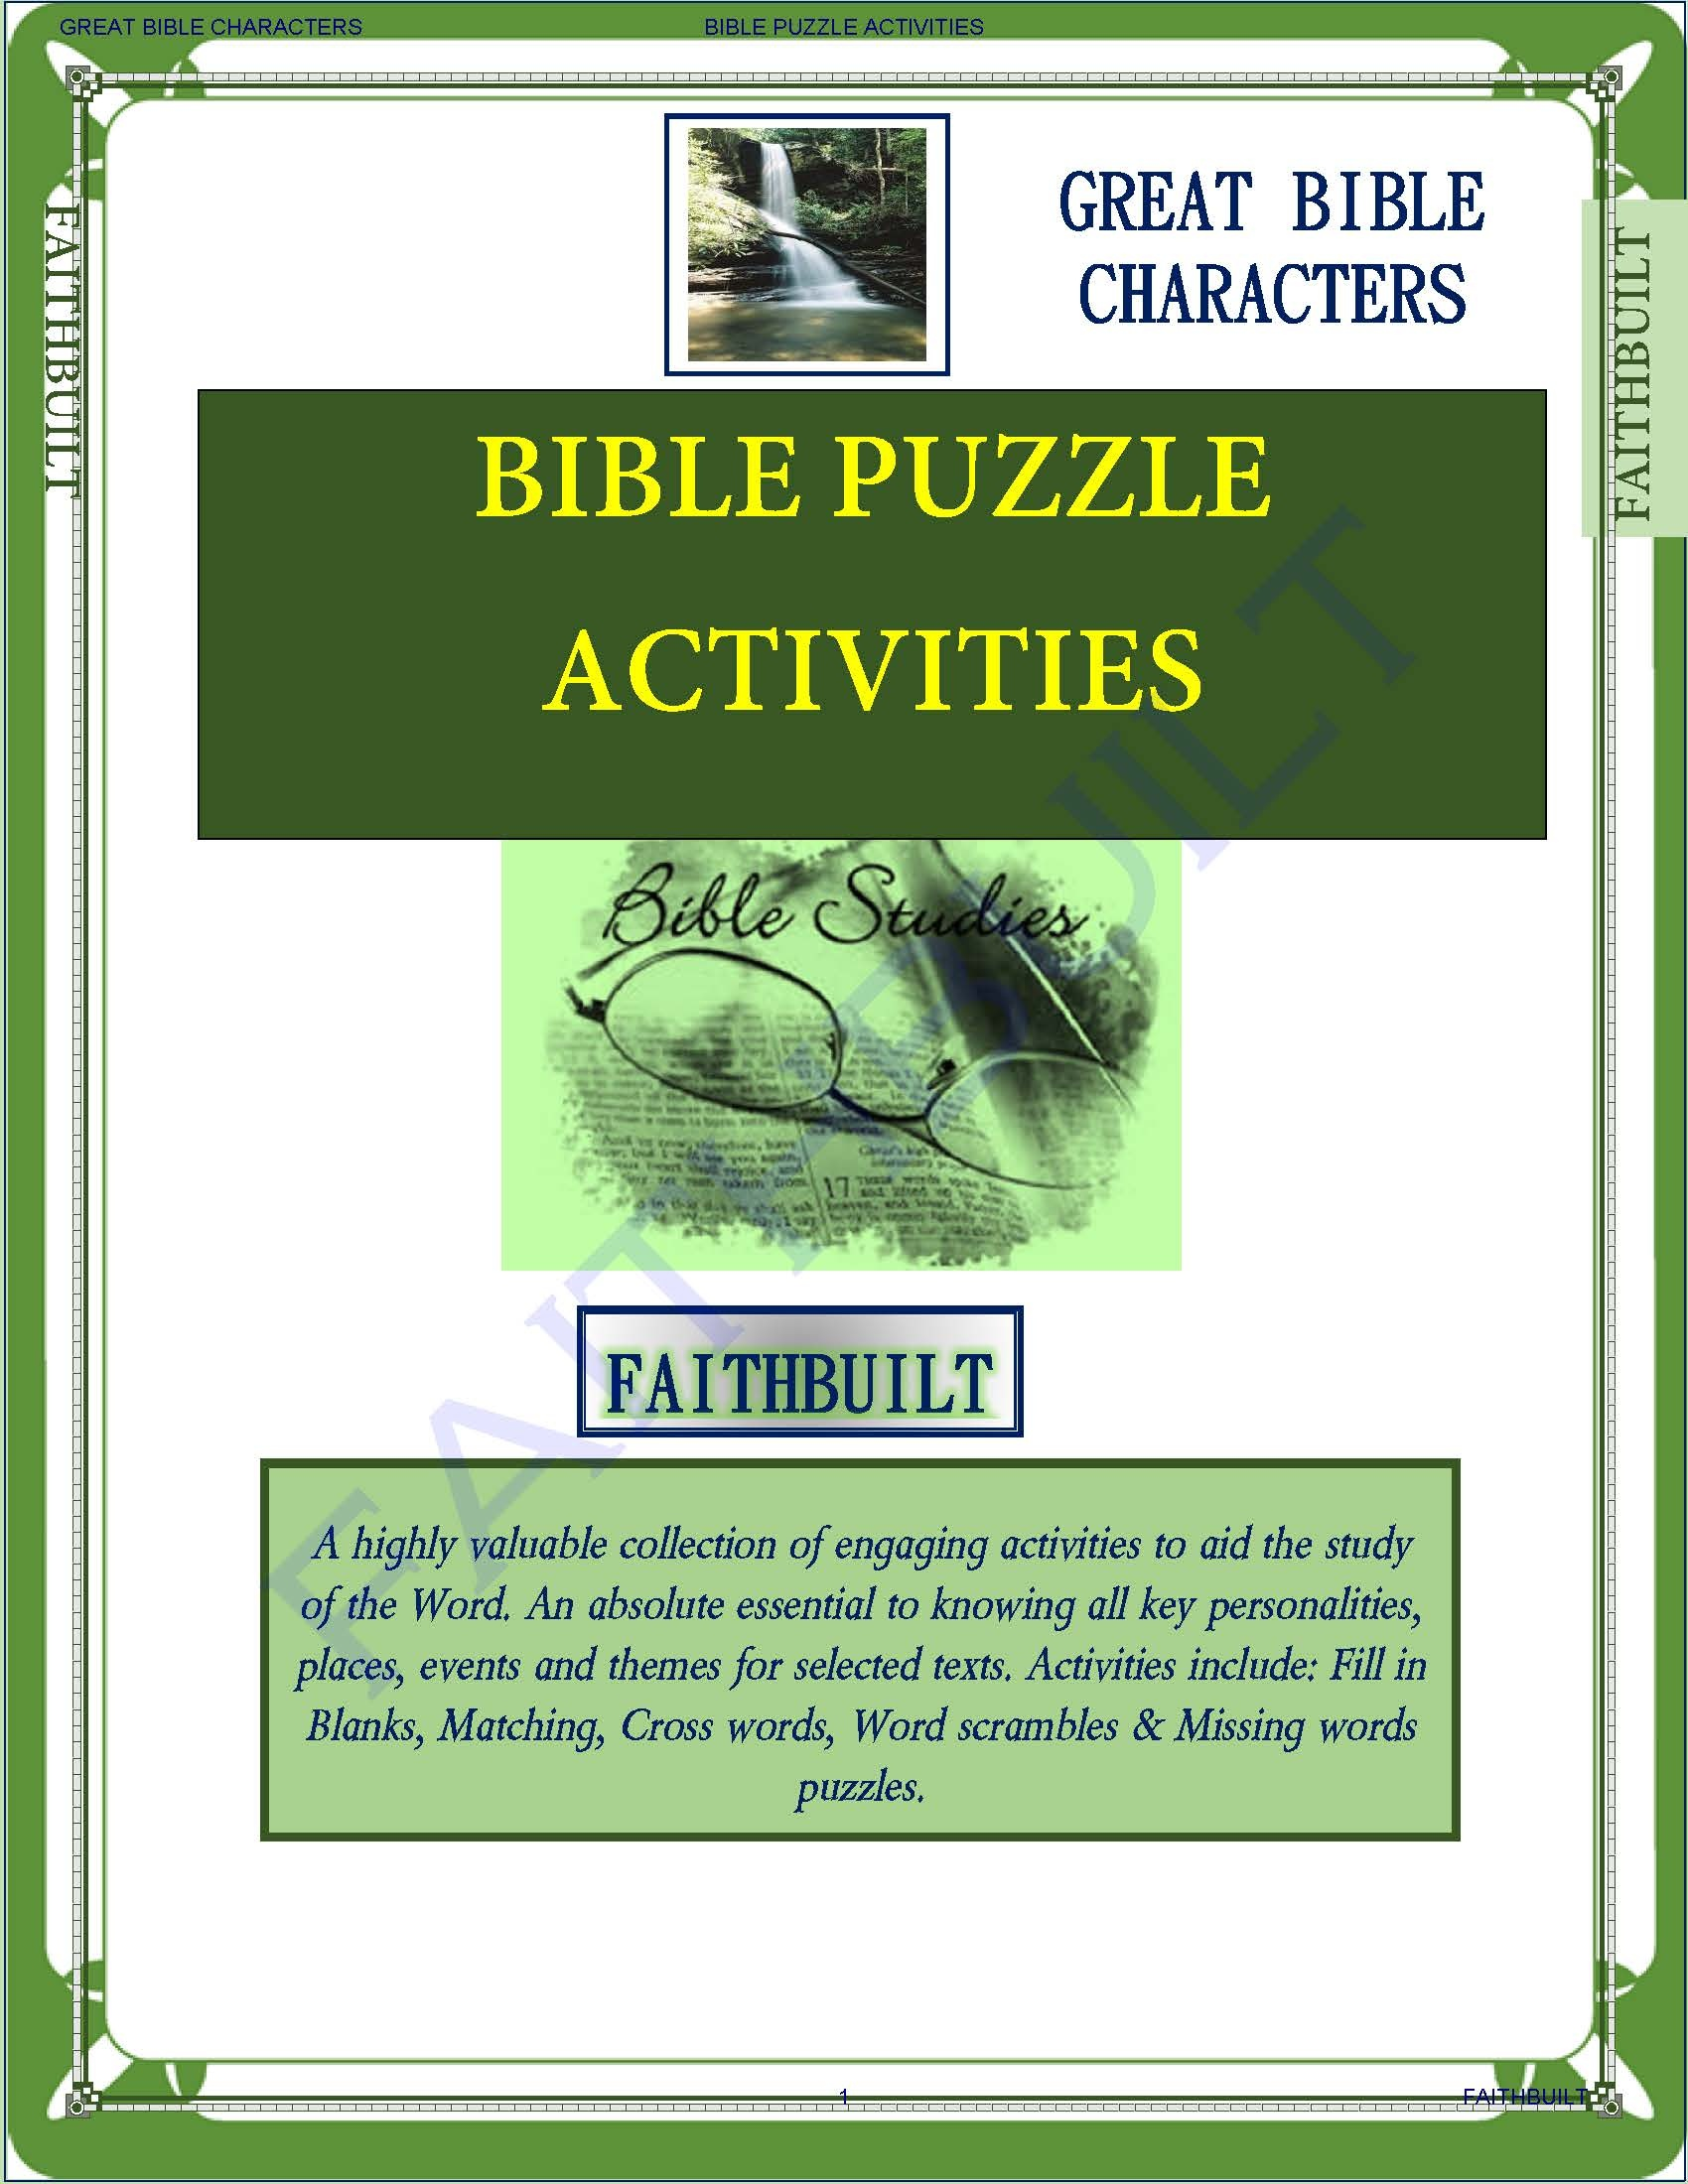 GREAT BIBLE CHARACTERS : BIBLE PUZZLE ACTIVITIES